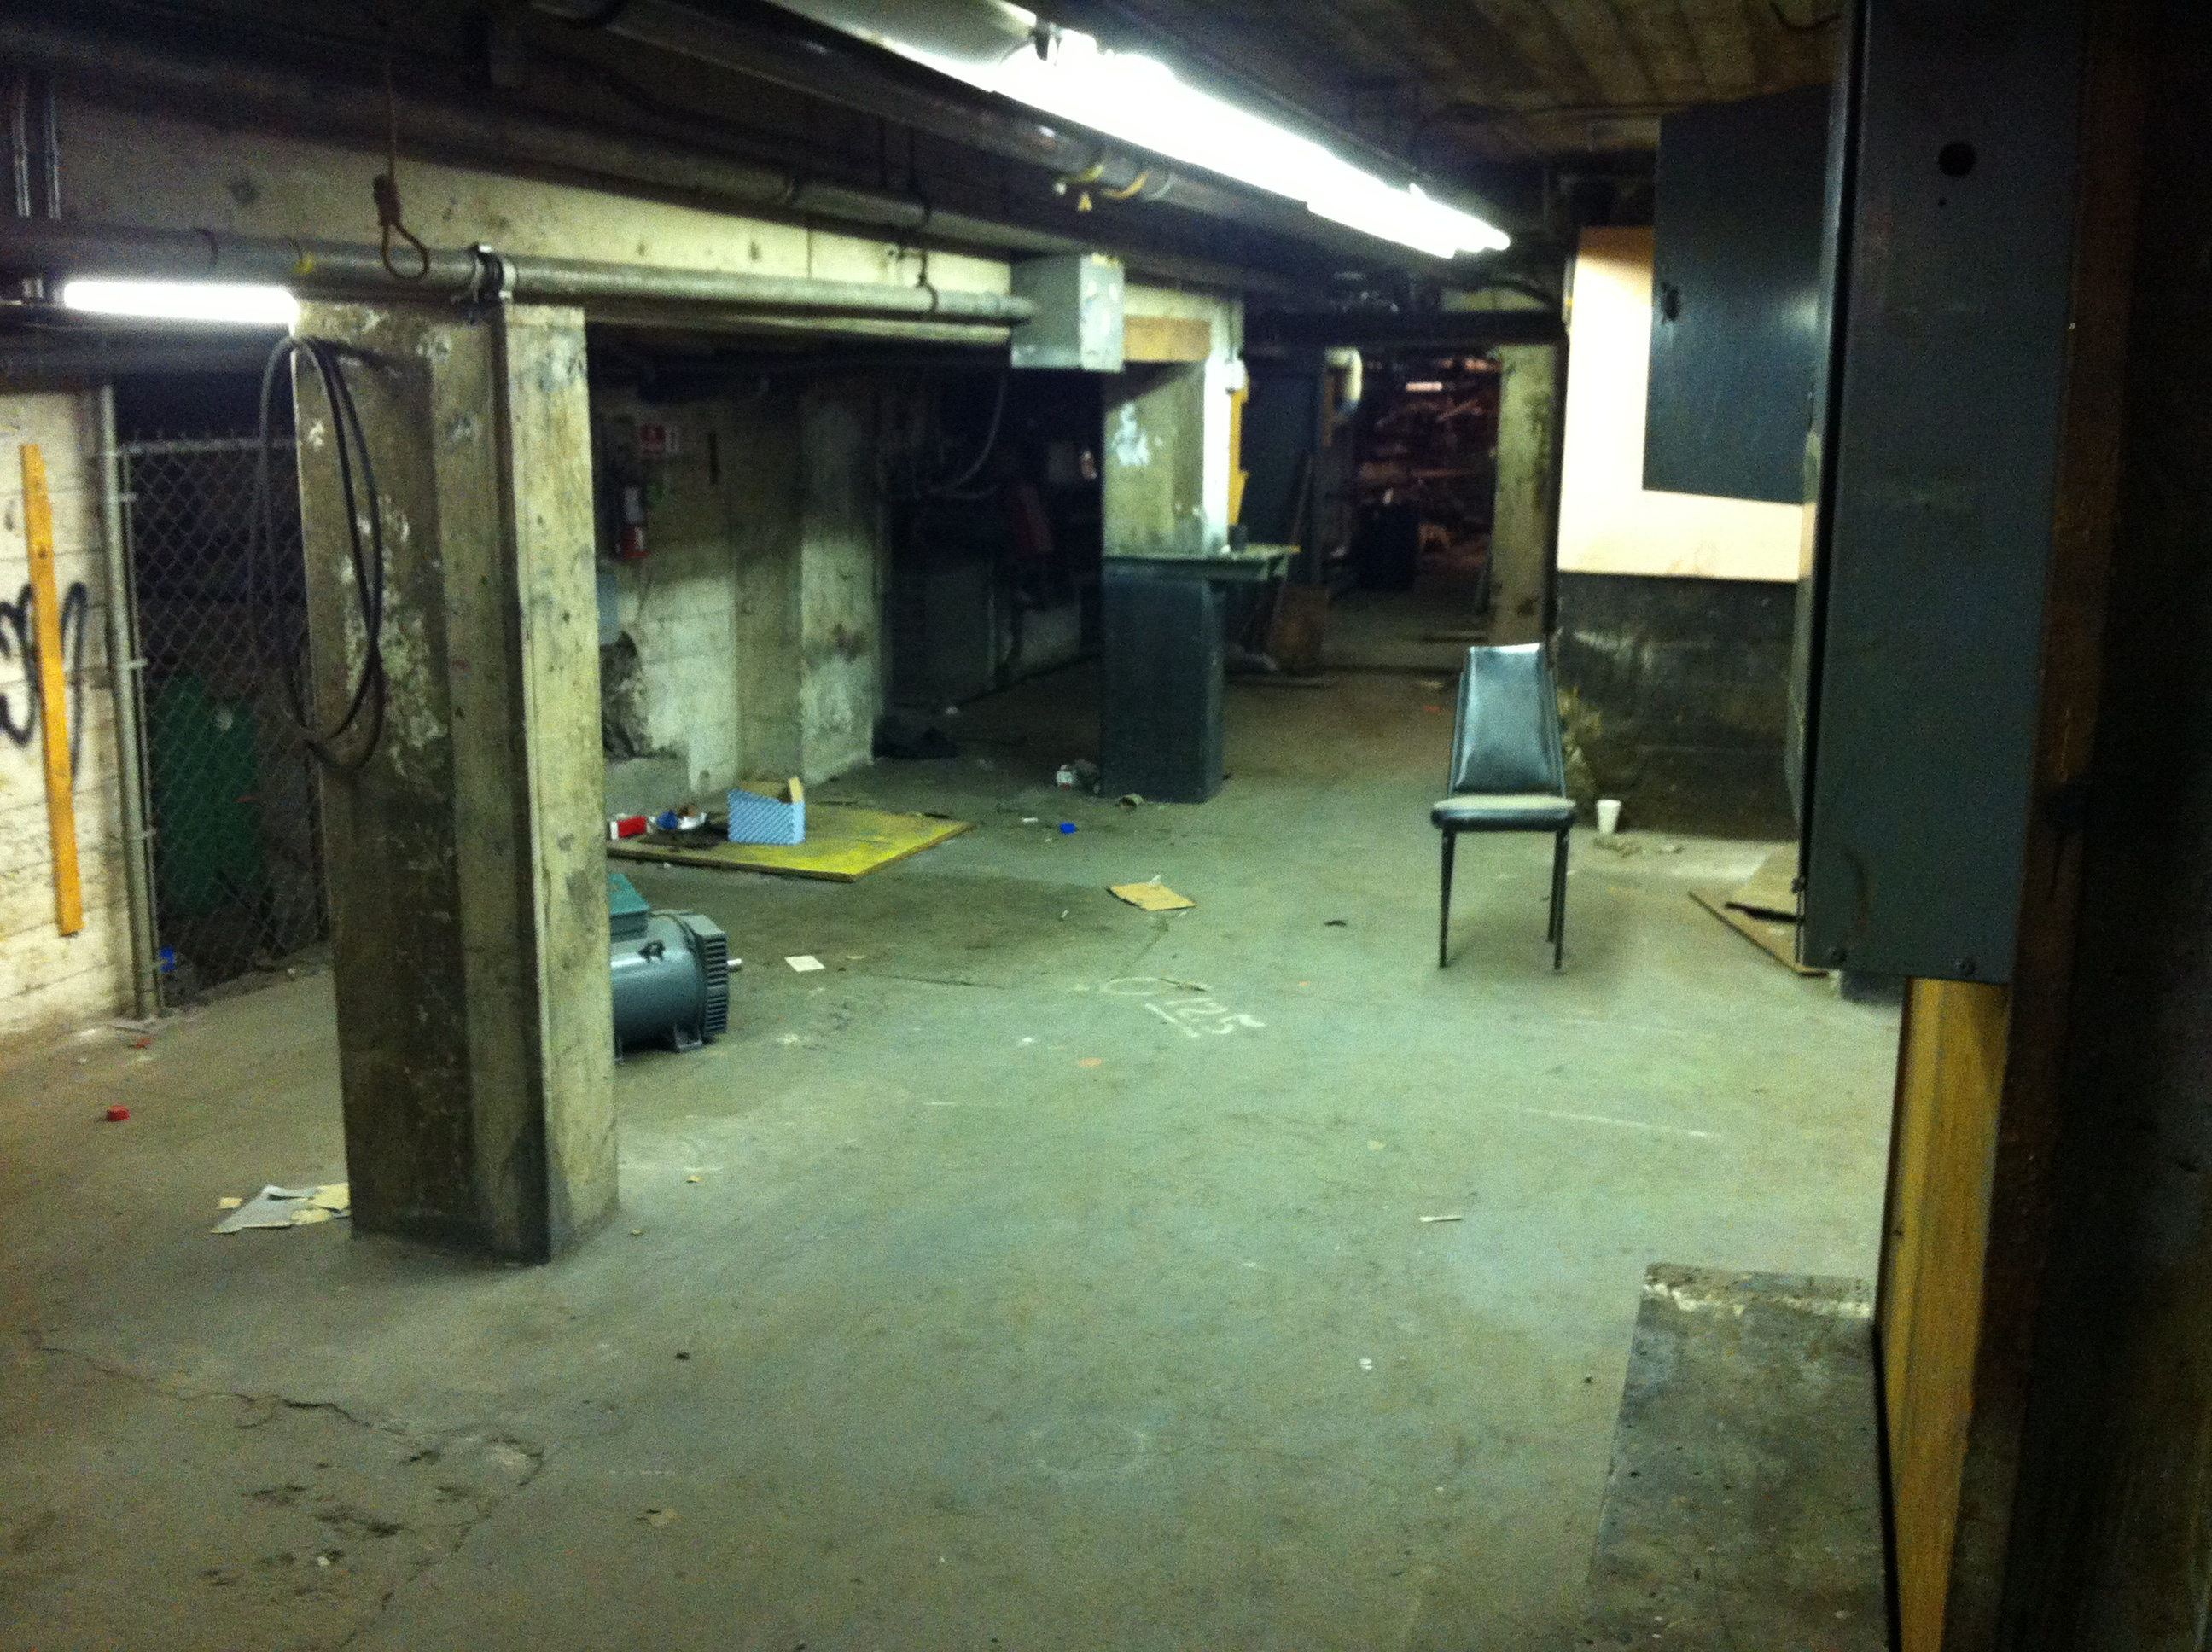 Basement Warehouse Basement Office Los Angeles Filming Location Herald Examiner Los Angeles Filming Location